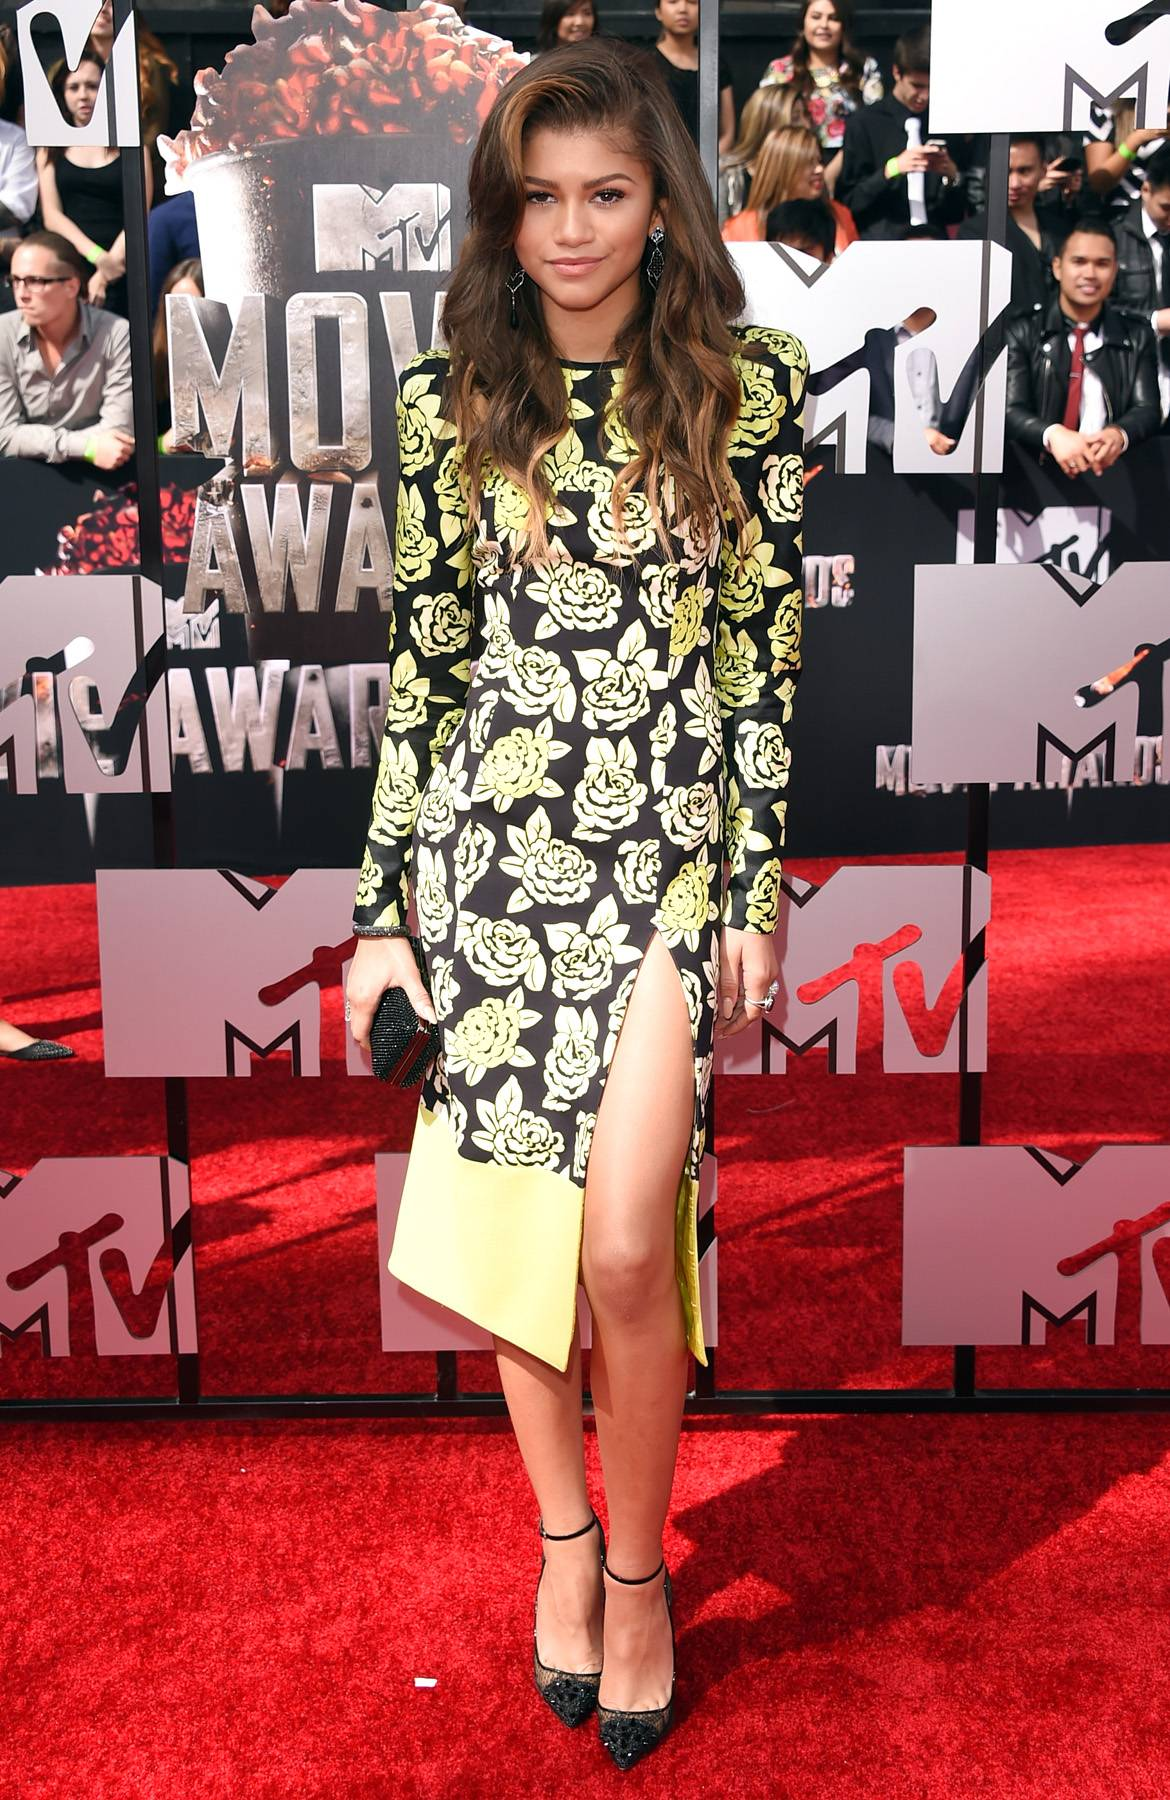 Rosy Disposition - The actress is all grown up in a rose-printed Emanuel Ungaro gown with racy thigh-high slit, accessorizing simply with a black oval clutch and ankle-strap pumps.  (Photo: Jason Merritt/Getty Images for MTV)